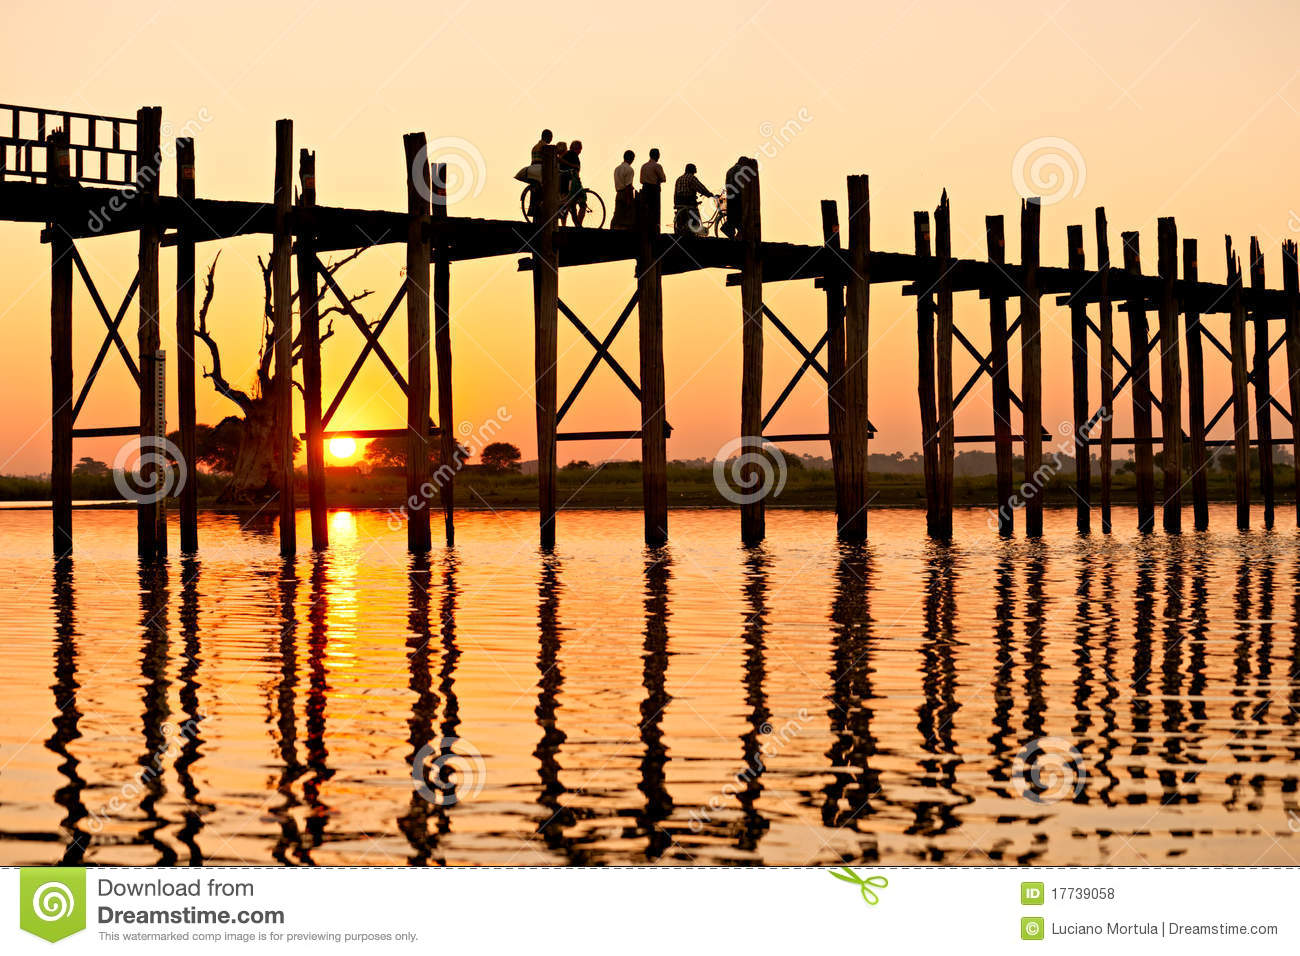 u bein bridge wikitravel rome - photo#3